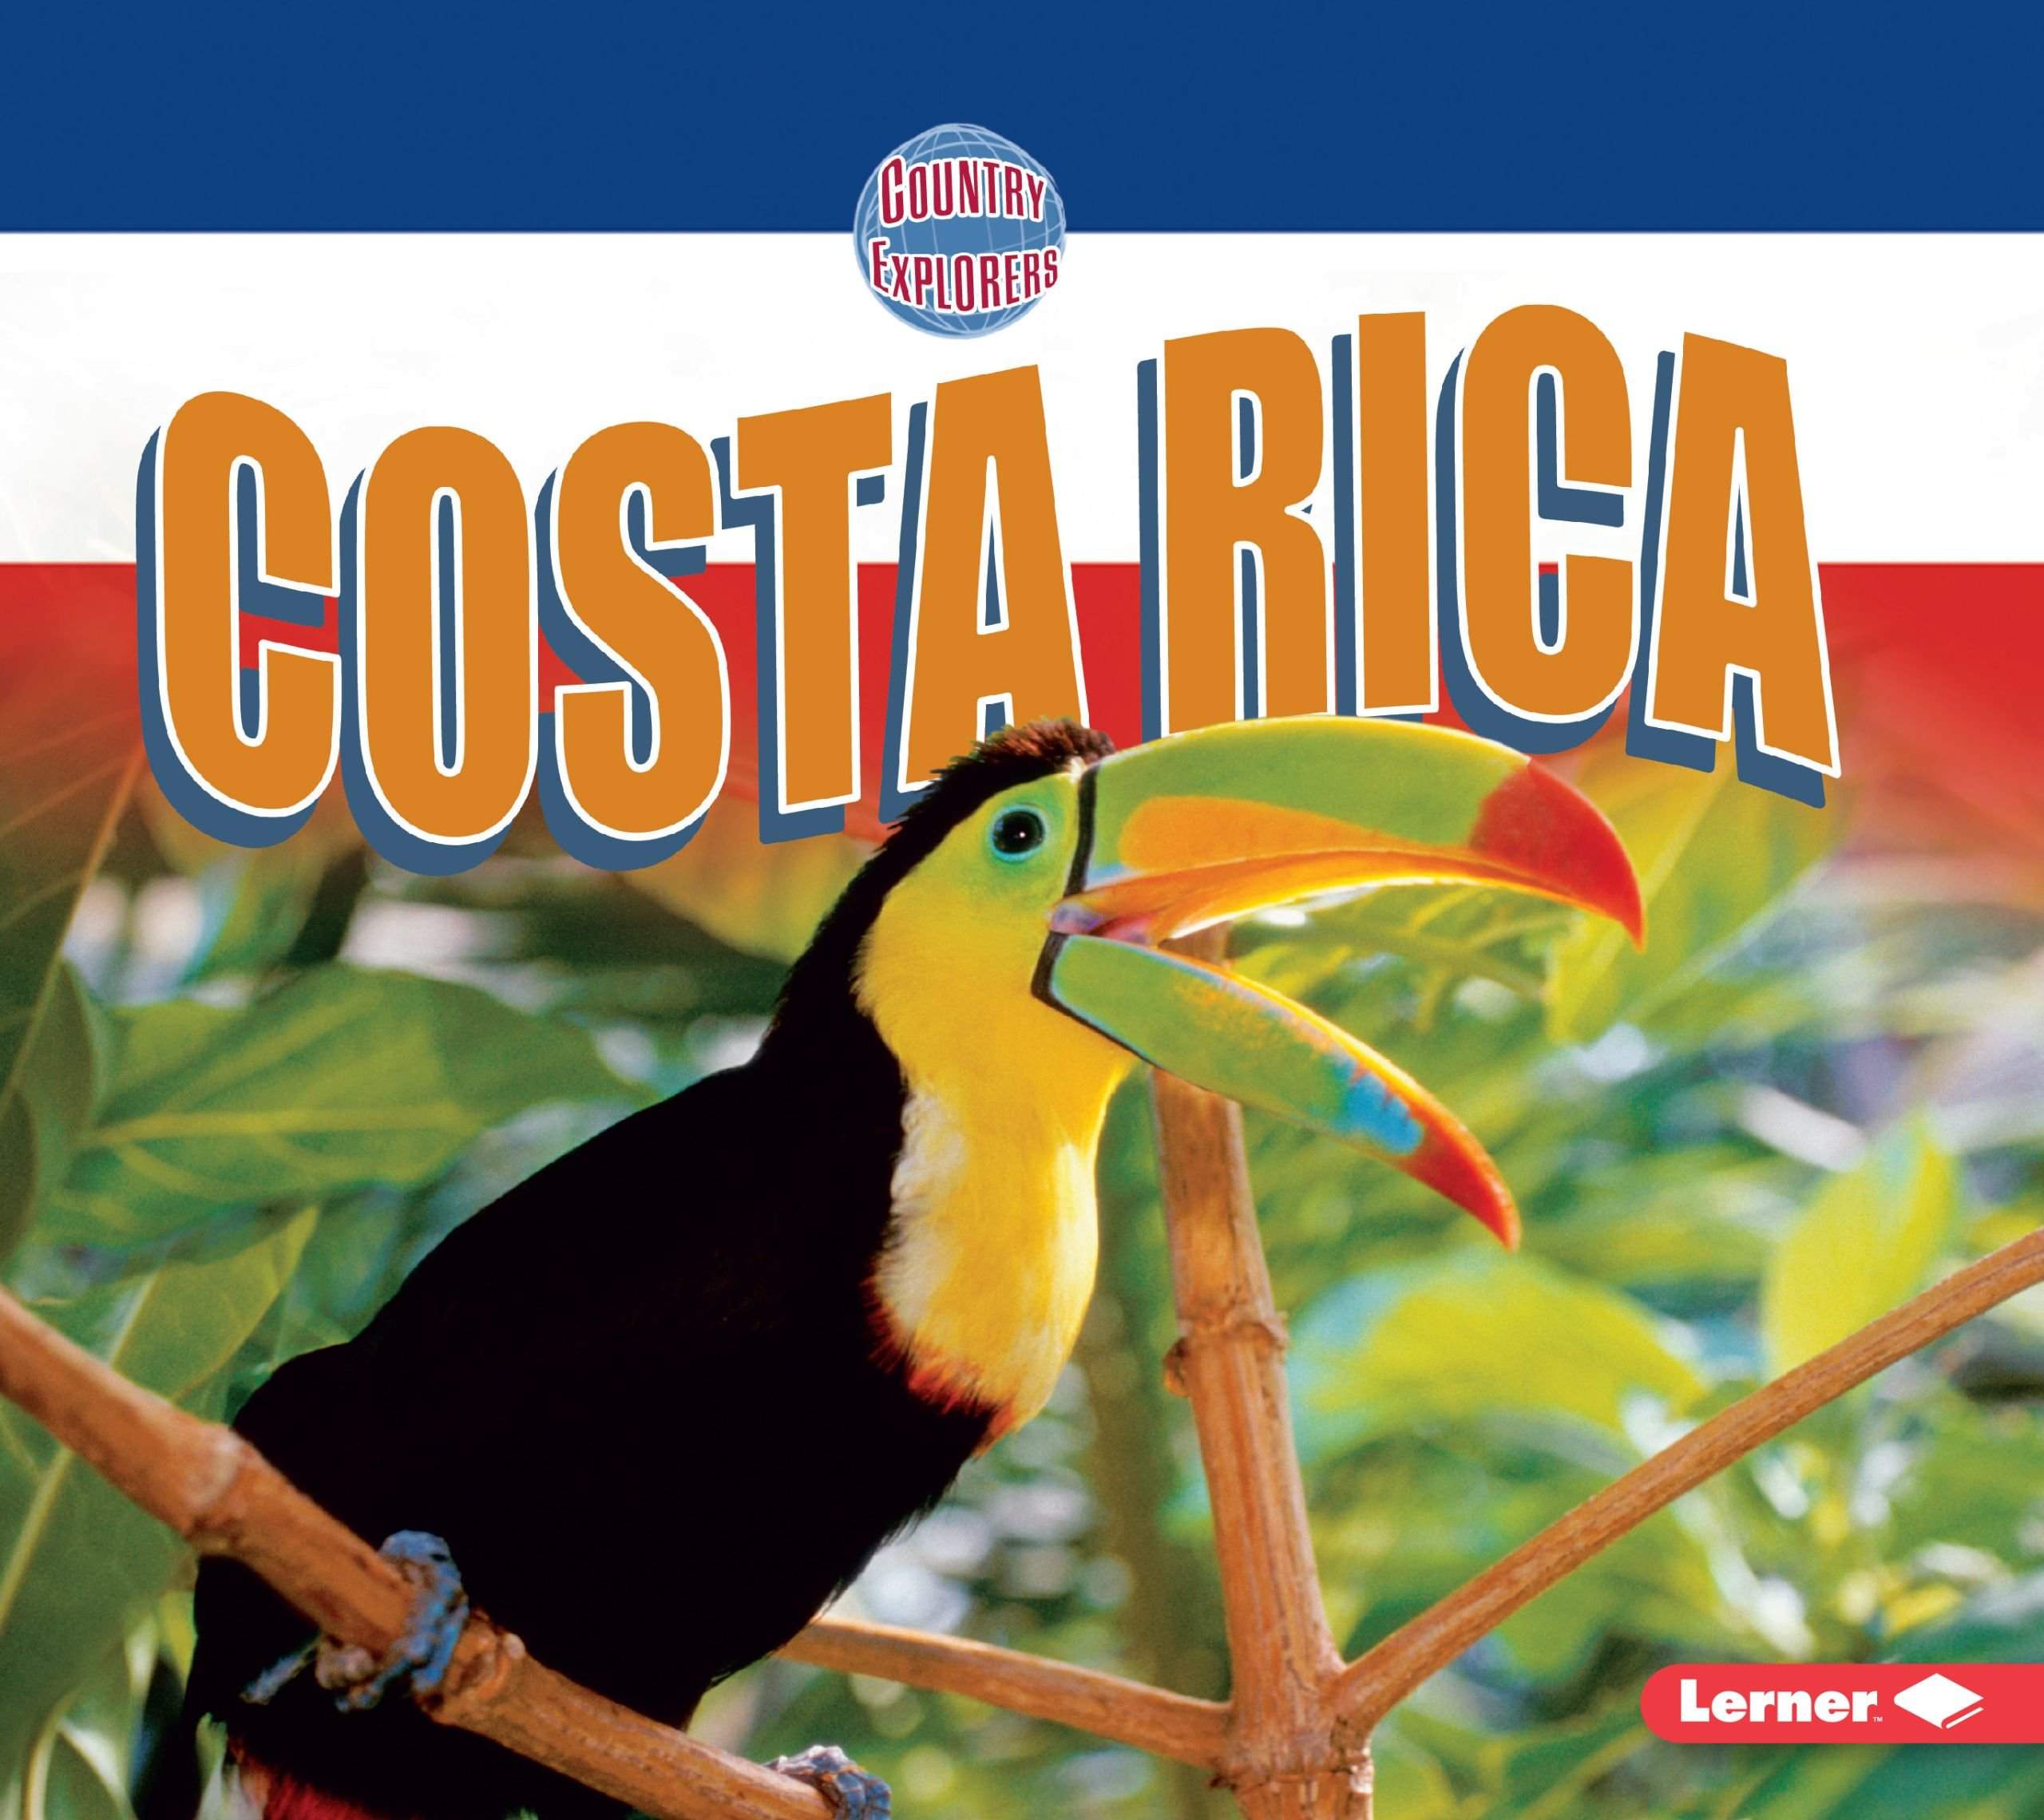 Costa Rica (Country Explorers)